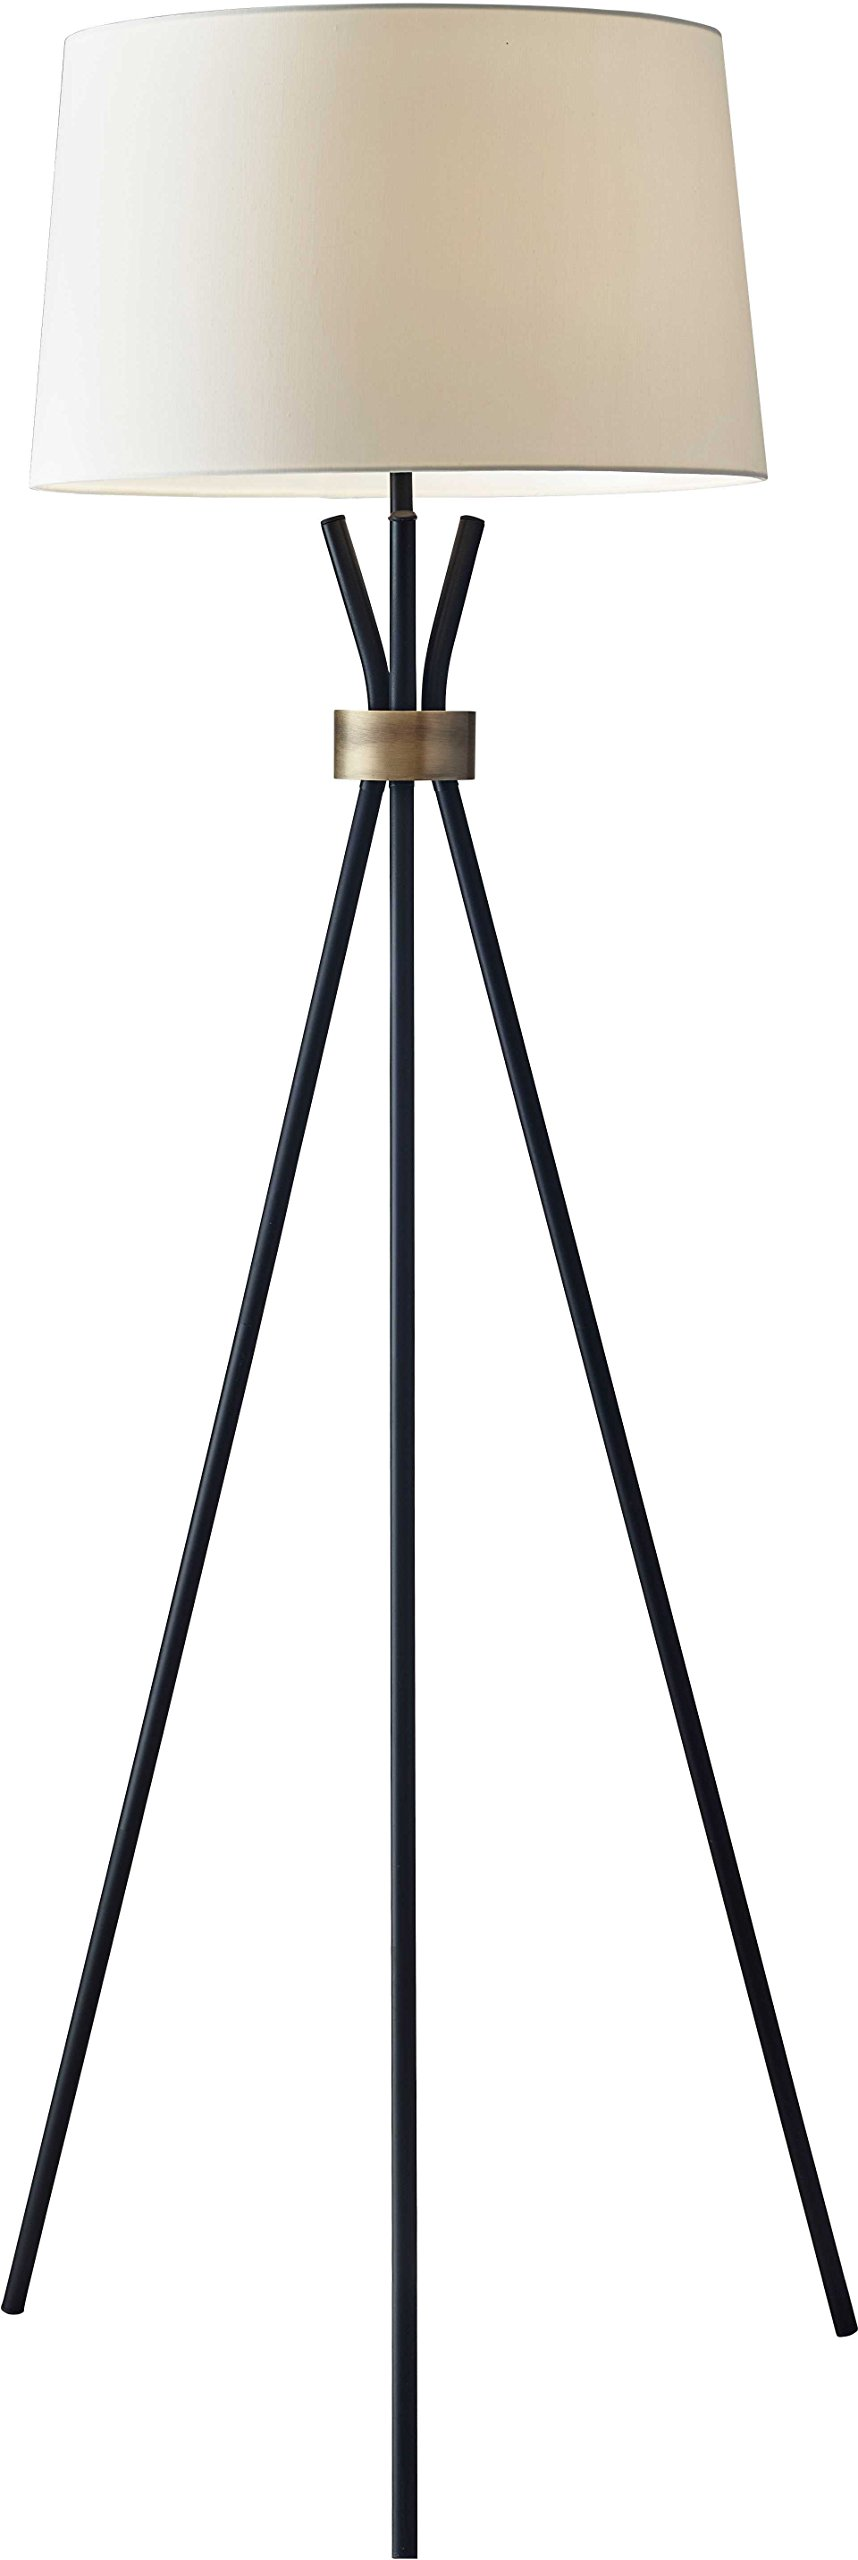 """Adesso 3835-01 Benson Floor Lamp, Black, Smart Outlet Compatible, 60"""" - A stunning silhouette with mid-century elements Modified drum shade in off-white linen Smart Outlet Compatible - living-room-decor, living-room, floor-lamps - 61nnRAJ4qrL -"""